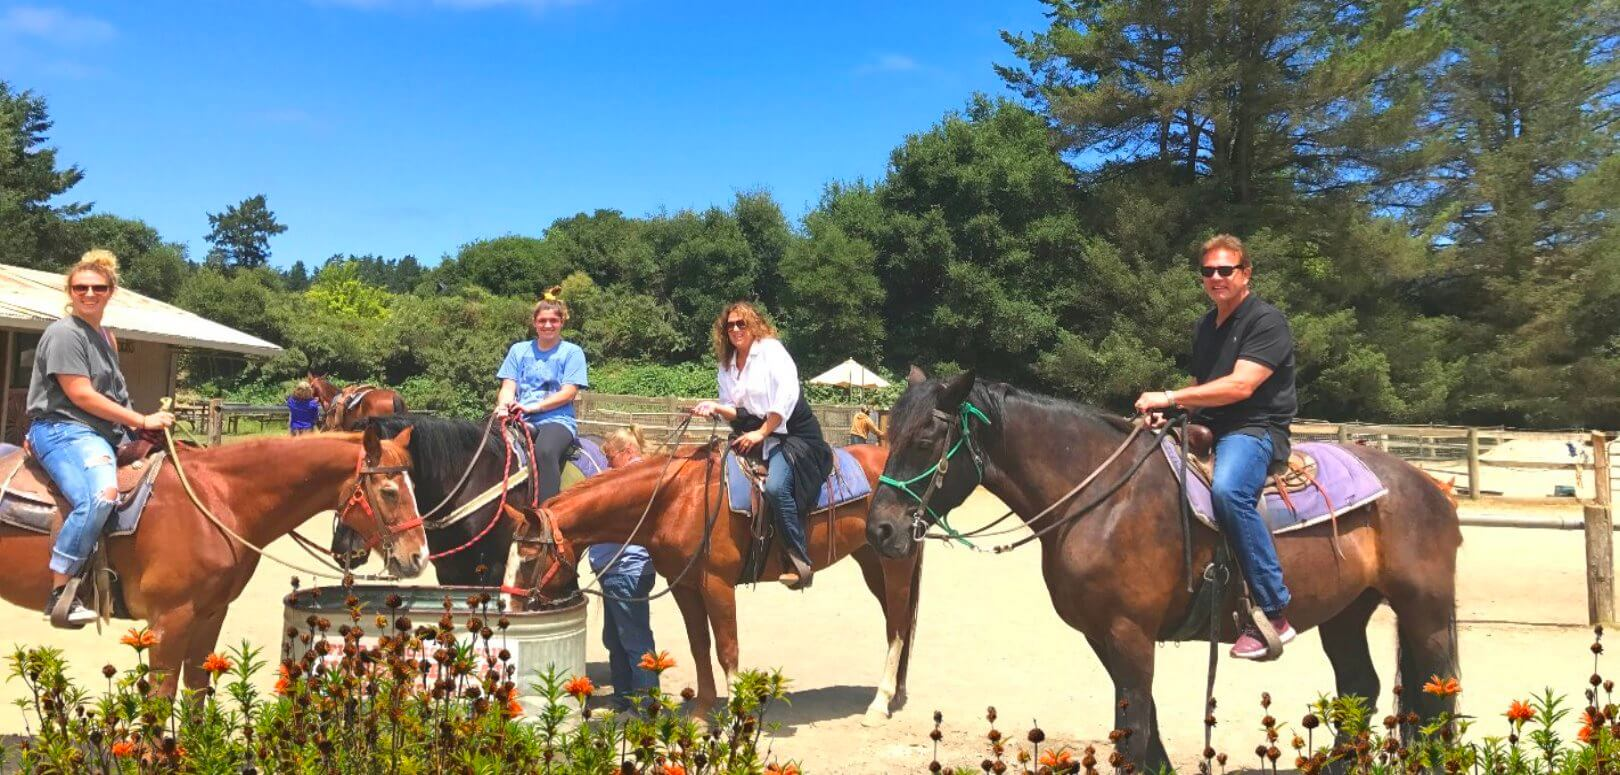 Horseback-Riding-Tour-Whole-Family-Outdoor-Activities